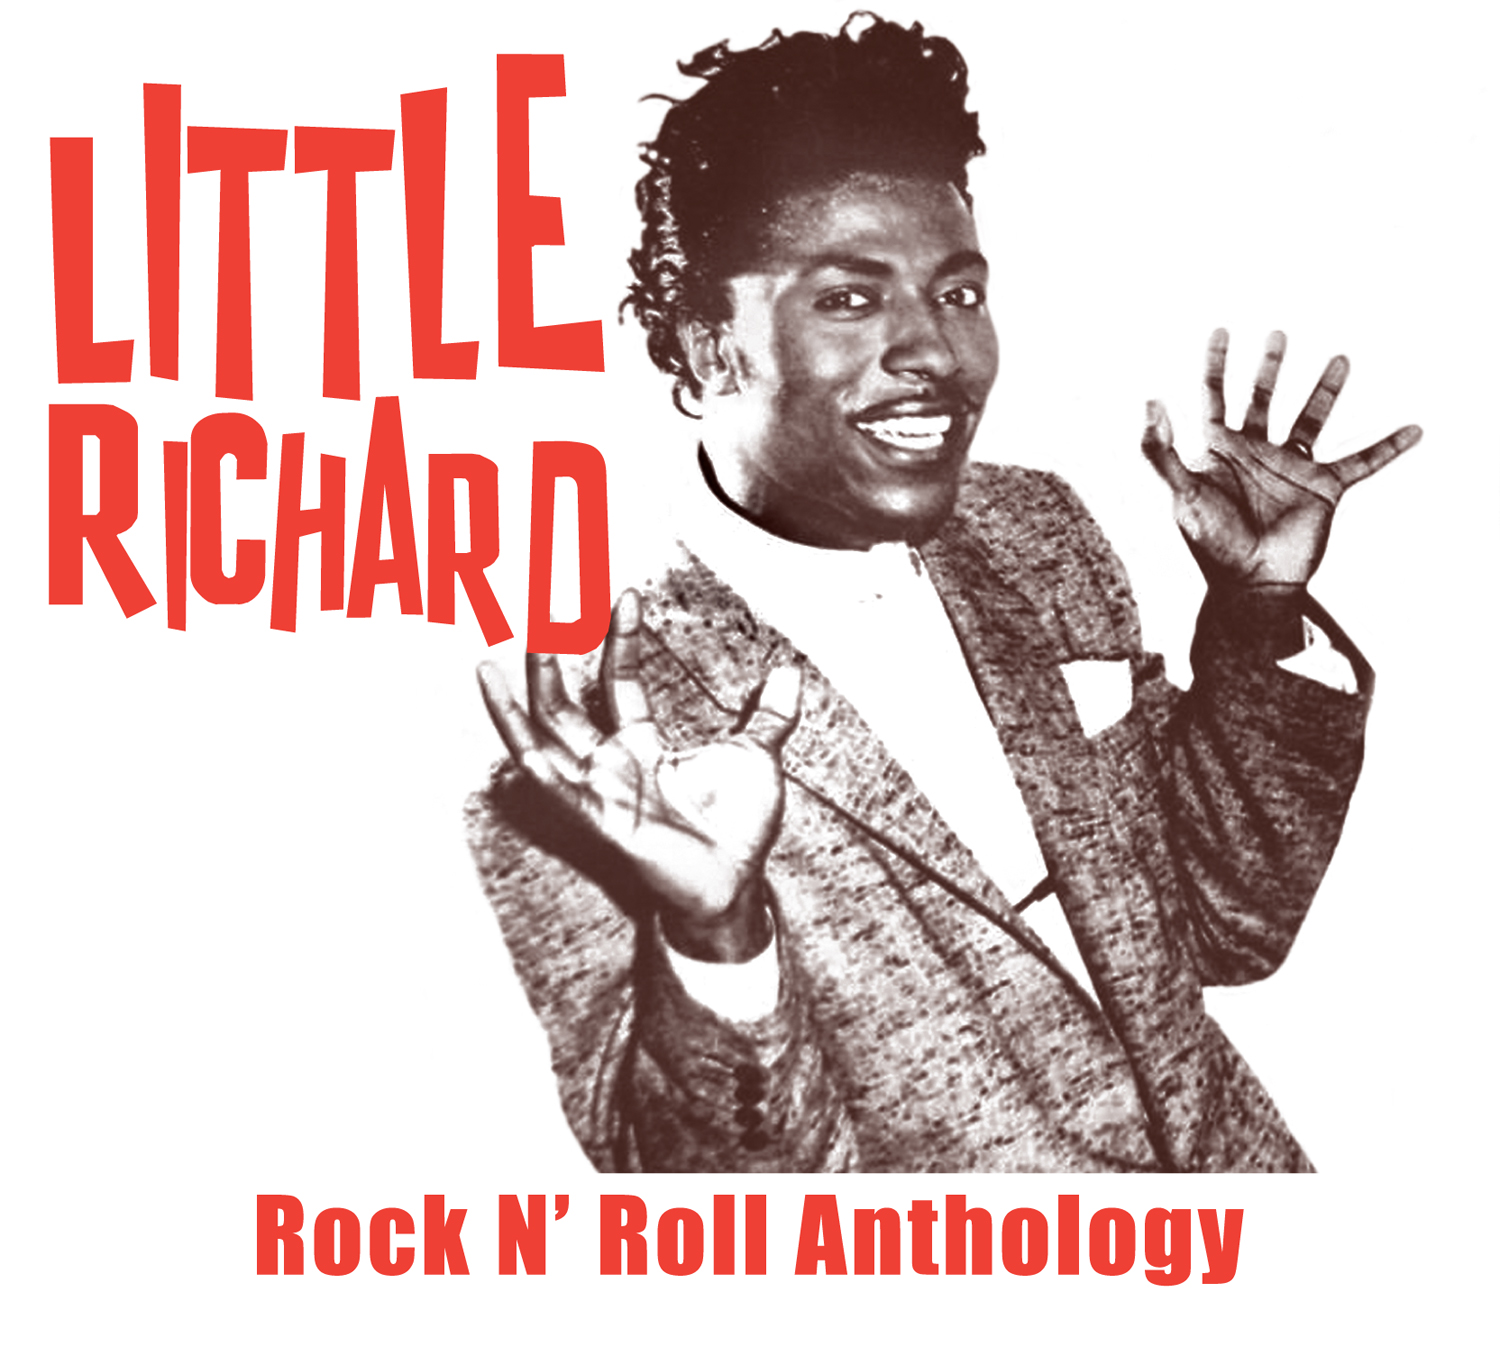 Little Richard Rock N' Roll Anthology